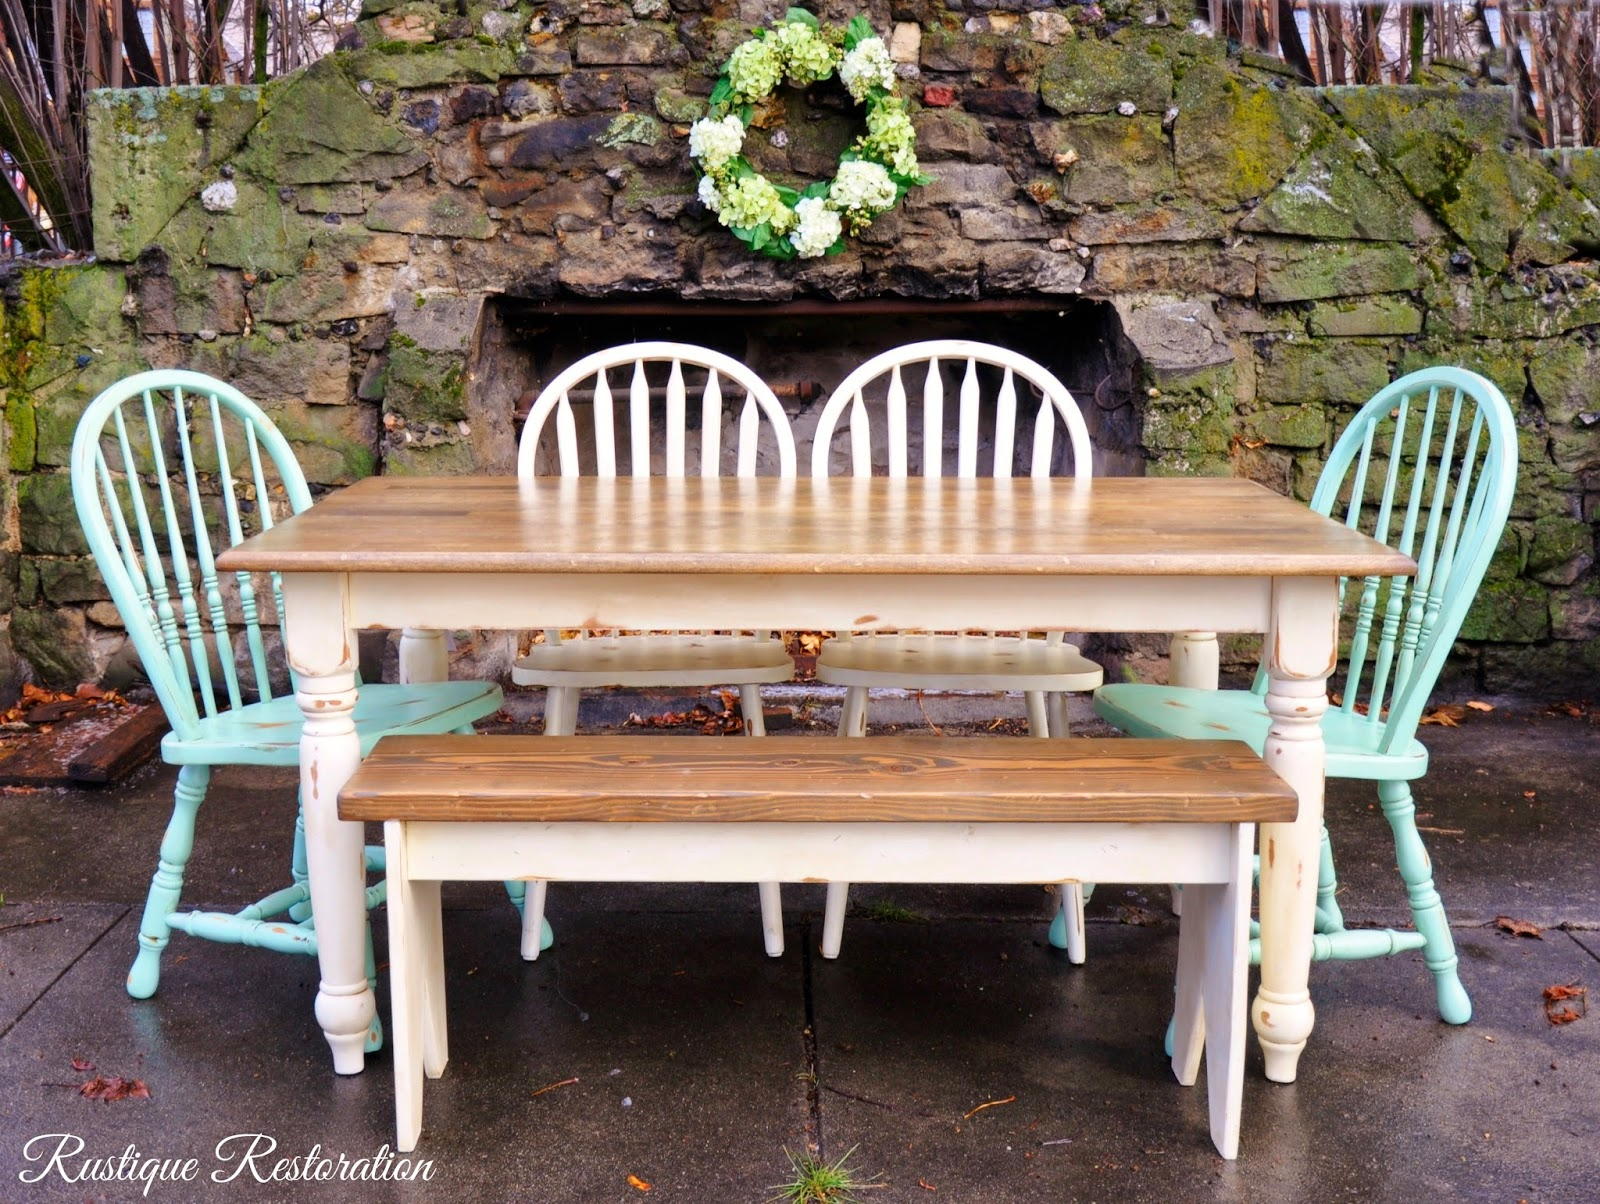 Farmhouse Tables And Chairs Folding Chair In Rajkot Rustique Restoration Distressed Table With A Glaze